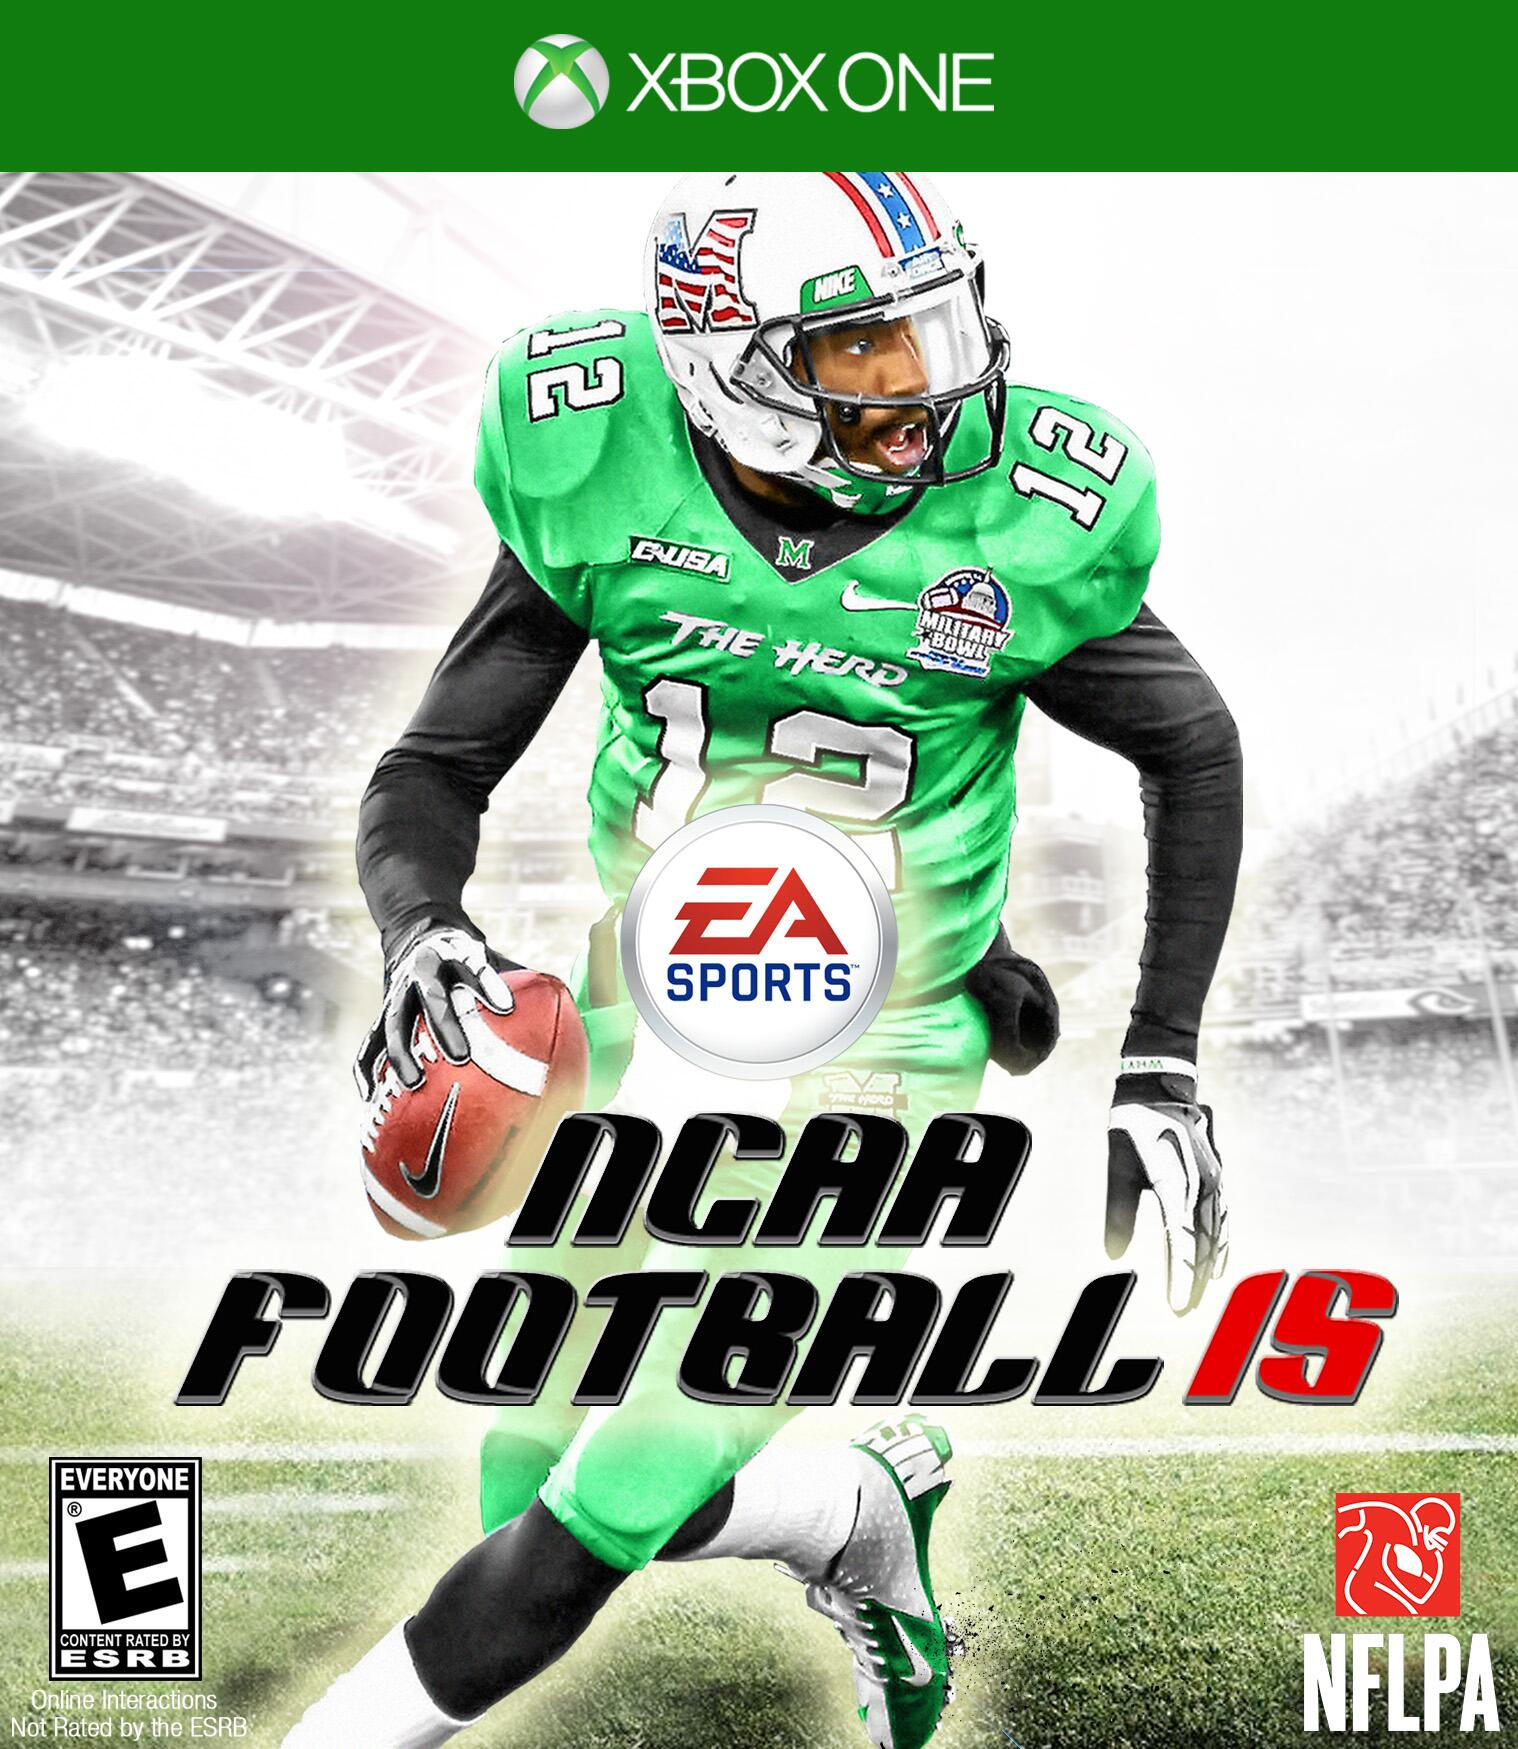 New Ncaa Football 15 Ps3 Release Date Release, Reviews and Models on ...